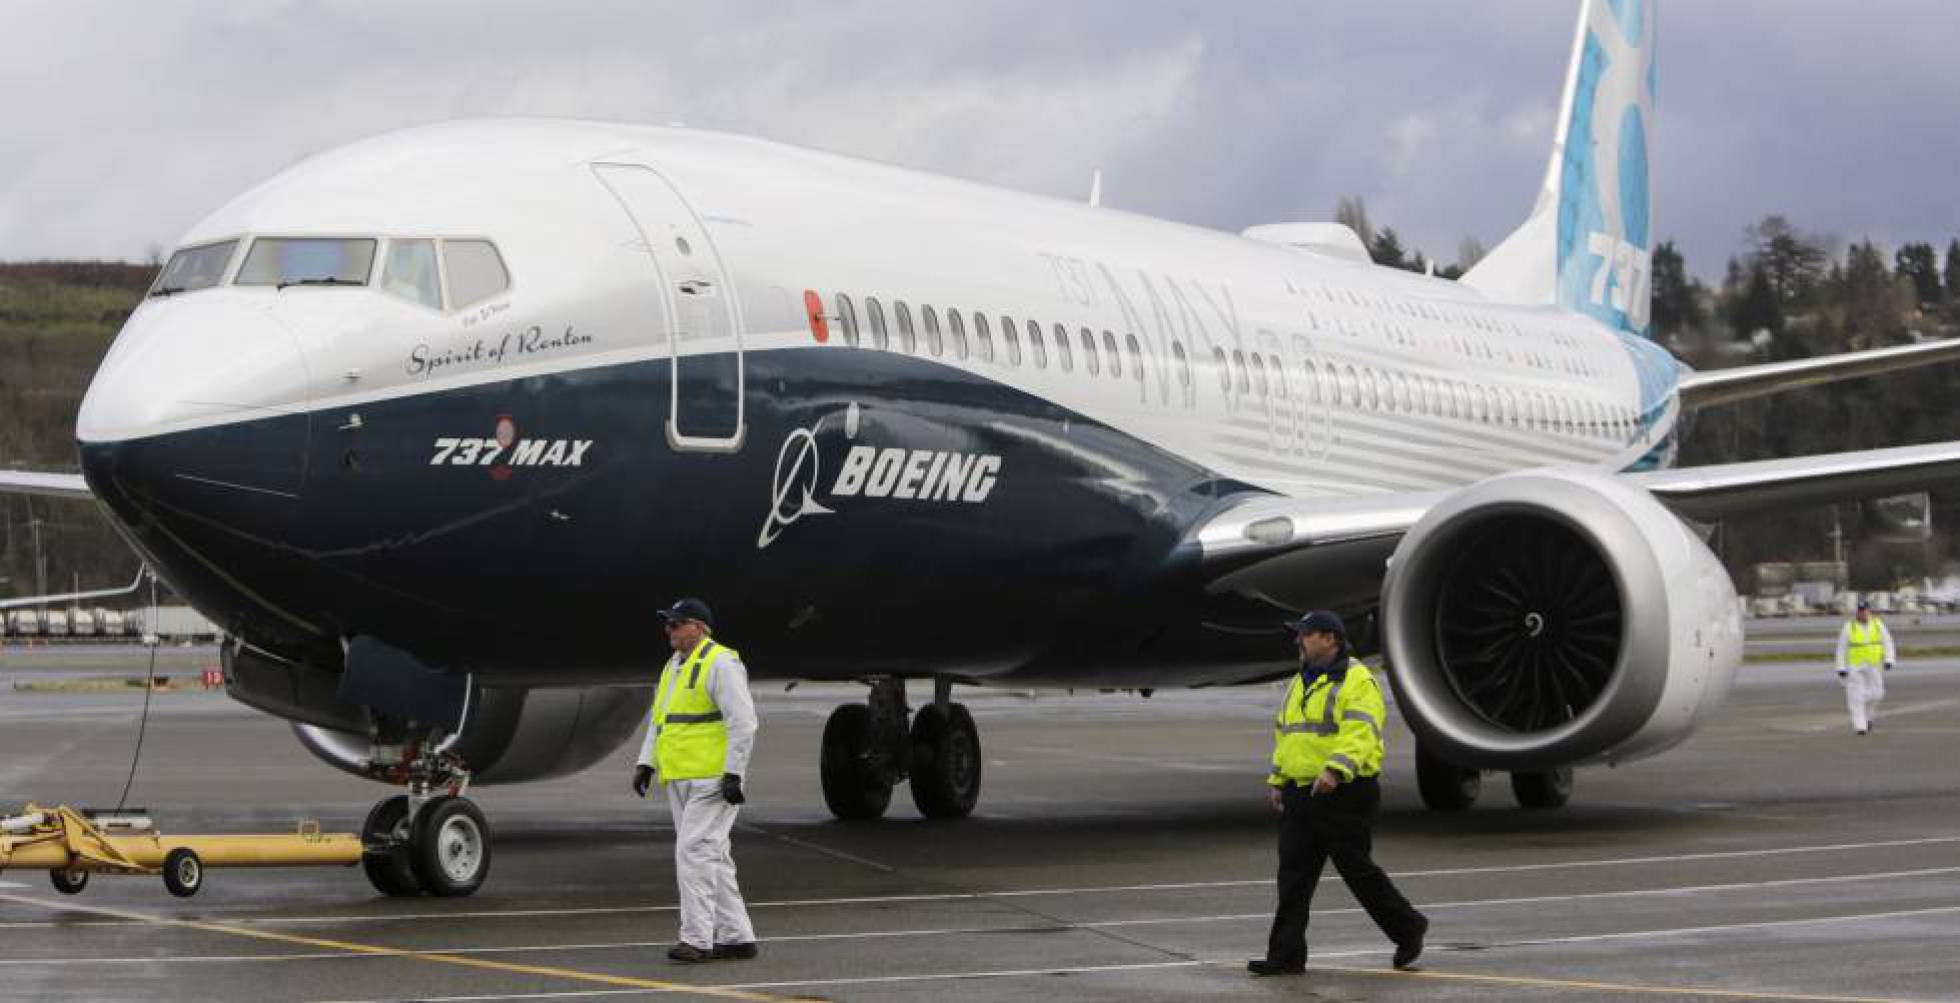 Boeing 737 MAX 1494445459_826702_1494447025_noticia_normal_recorte1